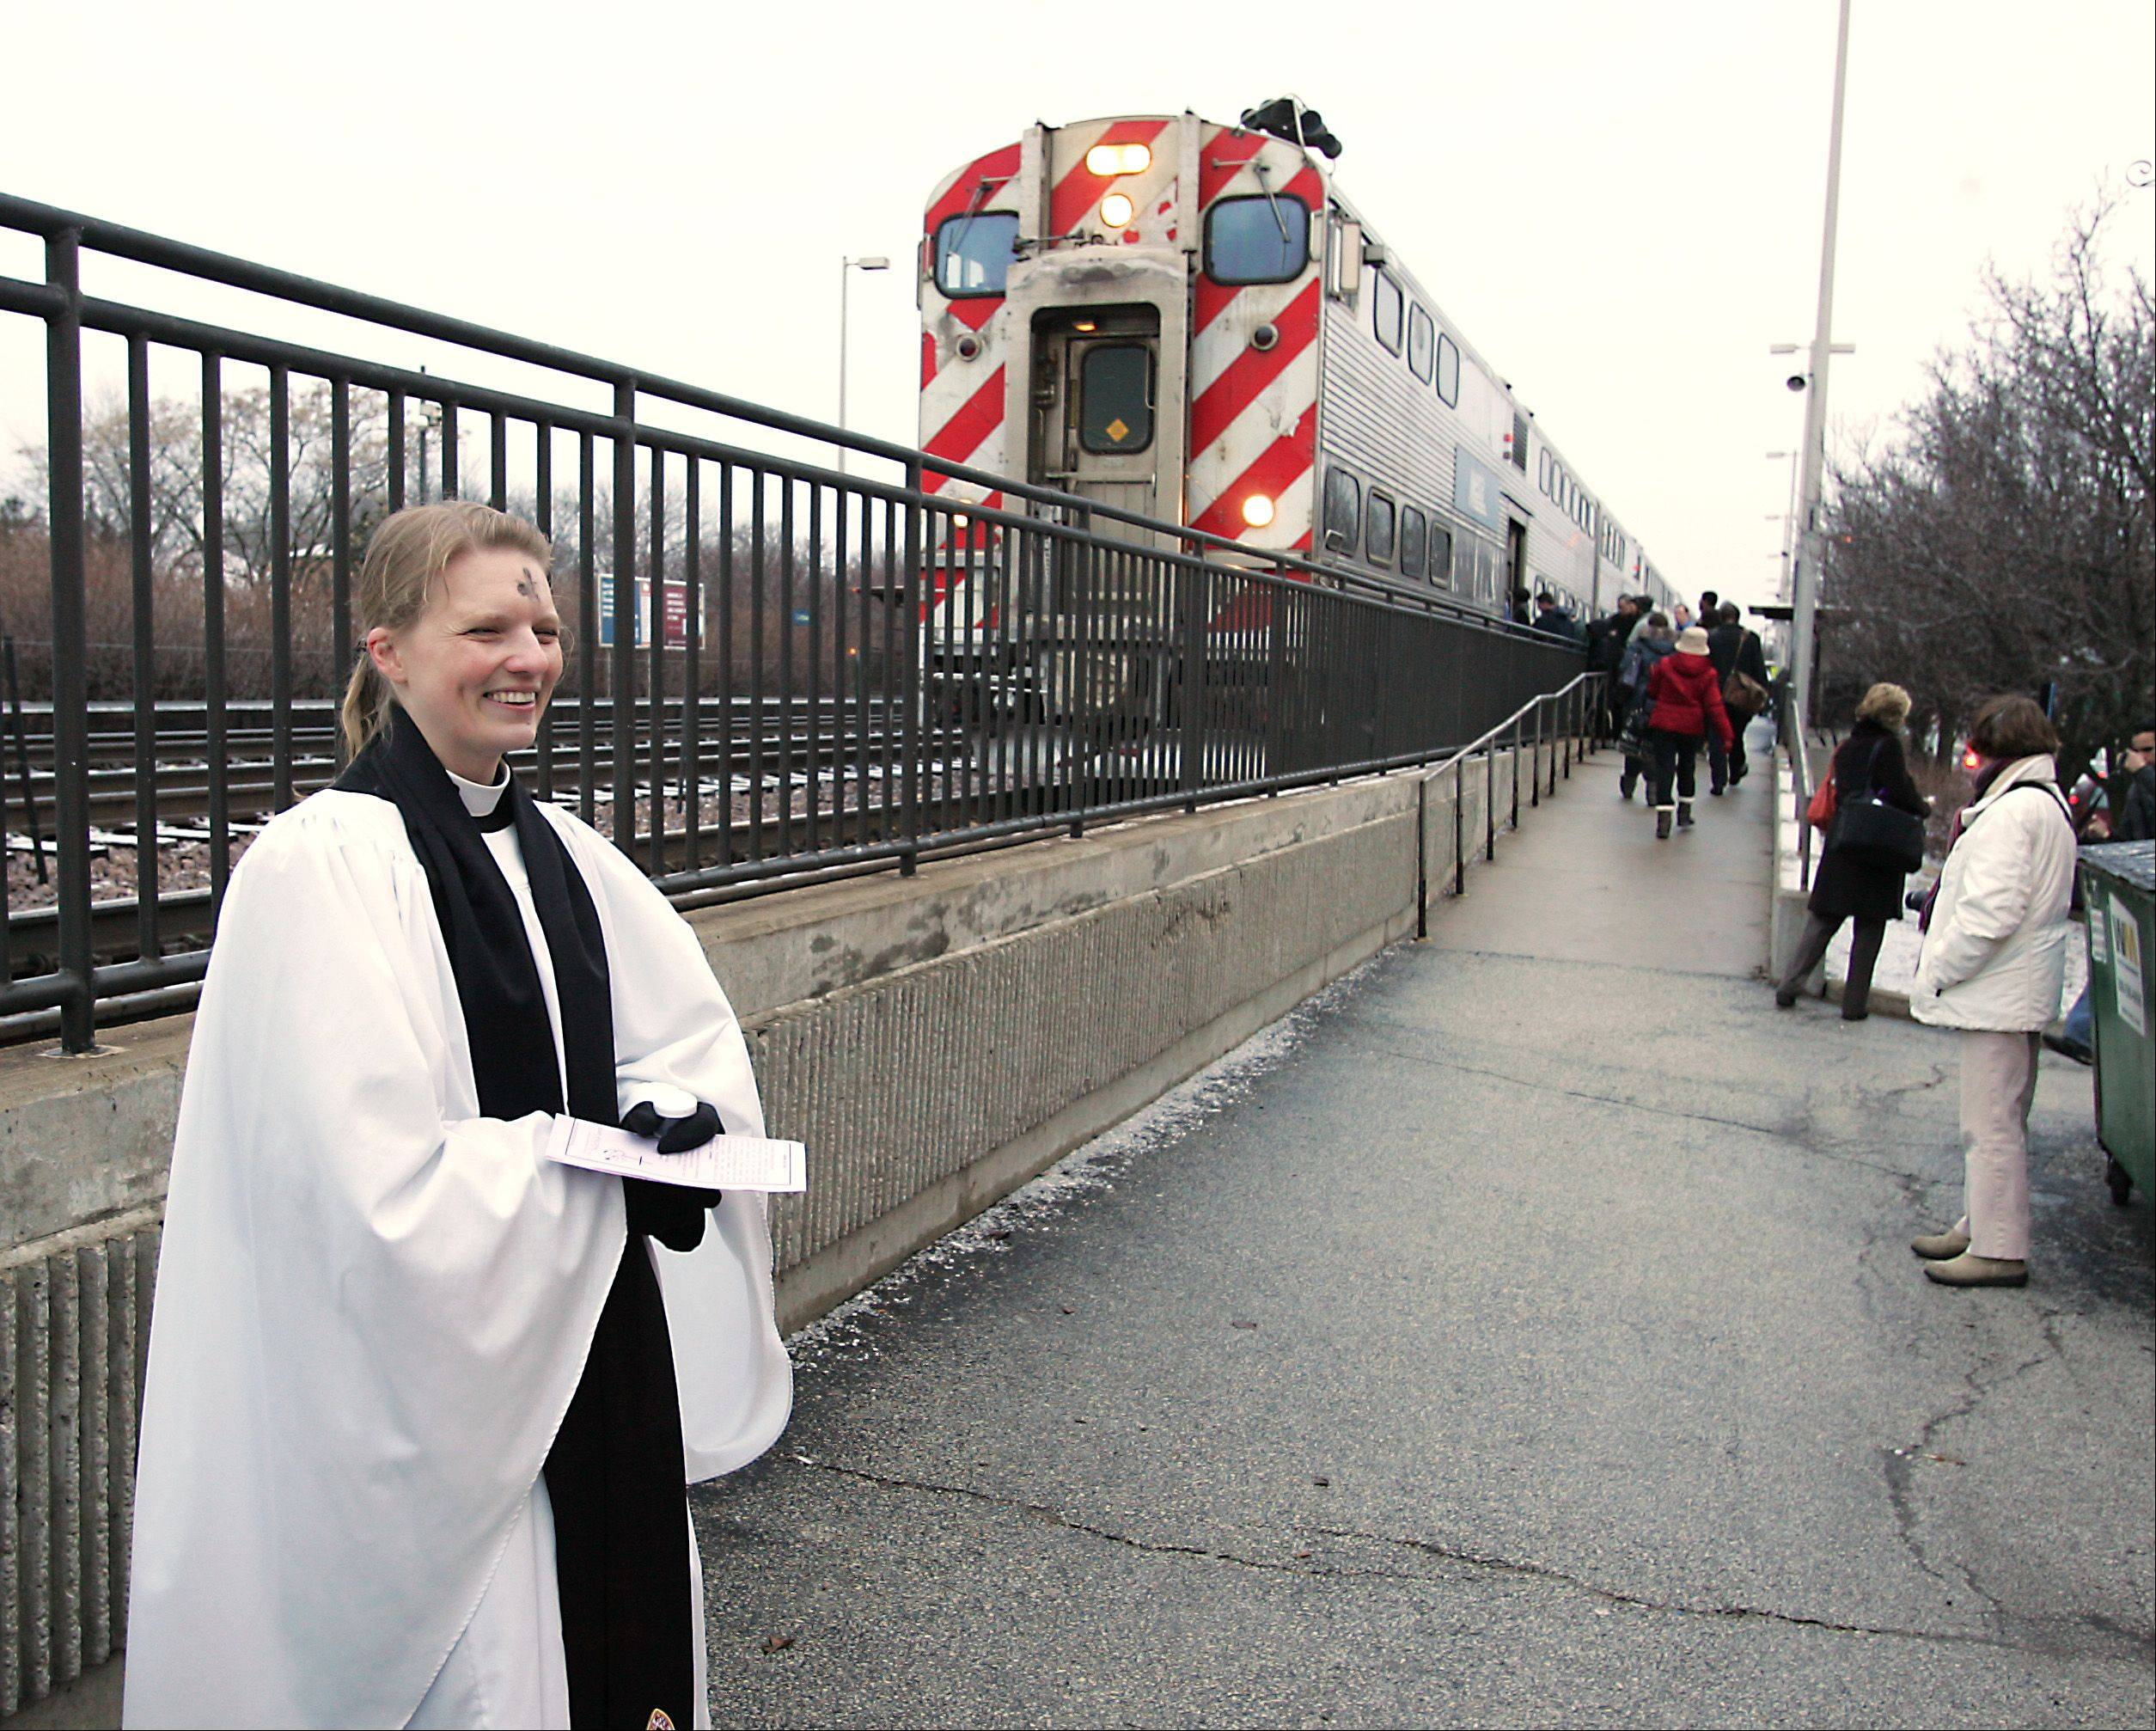 Rev. Emily Mellott of the Calvary Episcopal Church in Lombard created a website for the Ashes to Go movement and helped it spread across the nation last year and to two other countries this year. She and members of her church will greet train commuters from 6 to 8:45 a.m. on Ash Wednesday in Lombard.